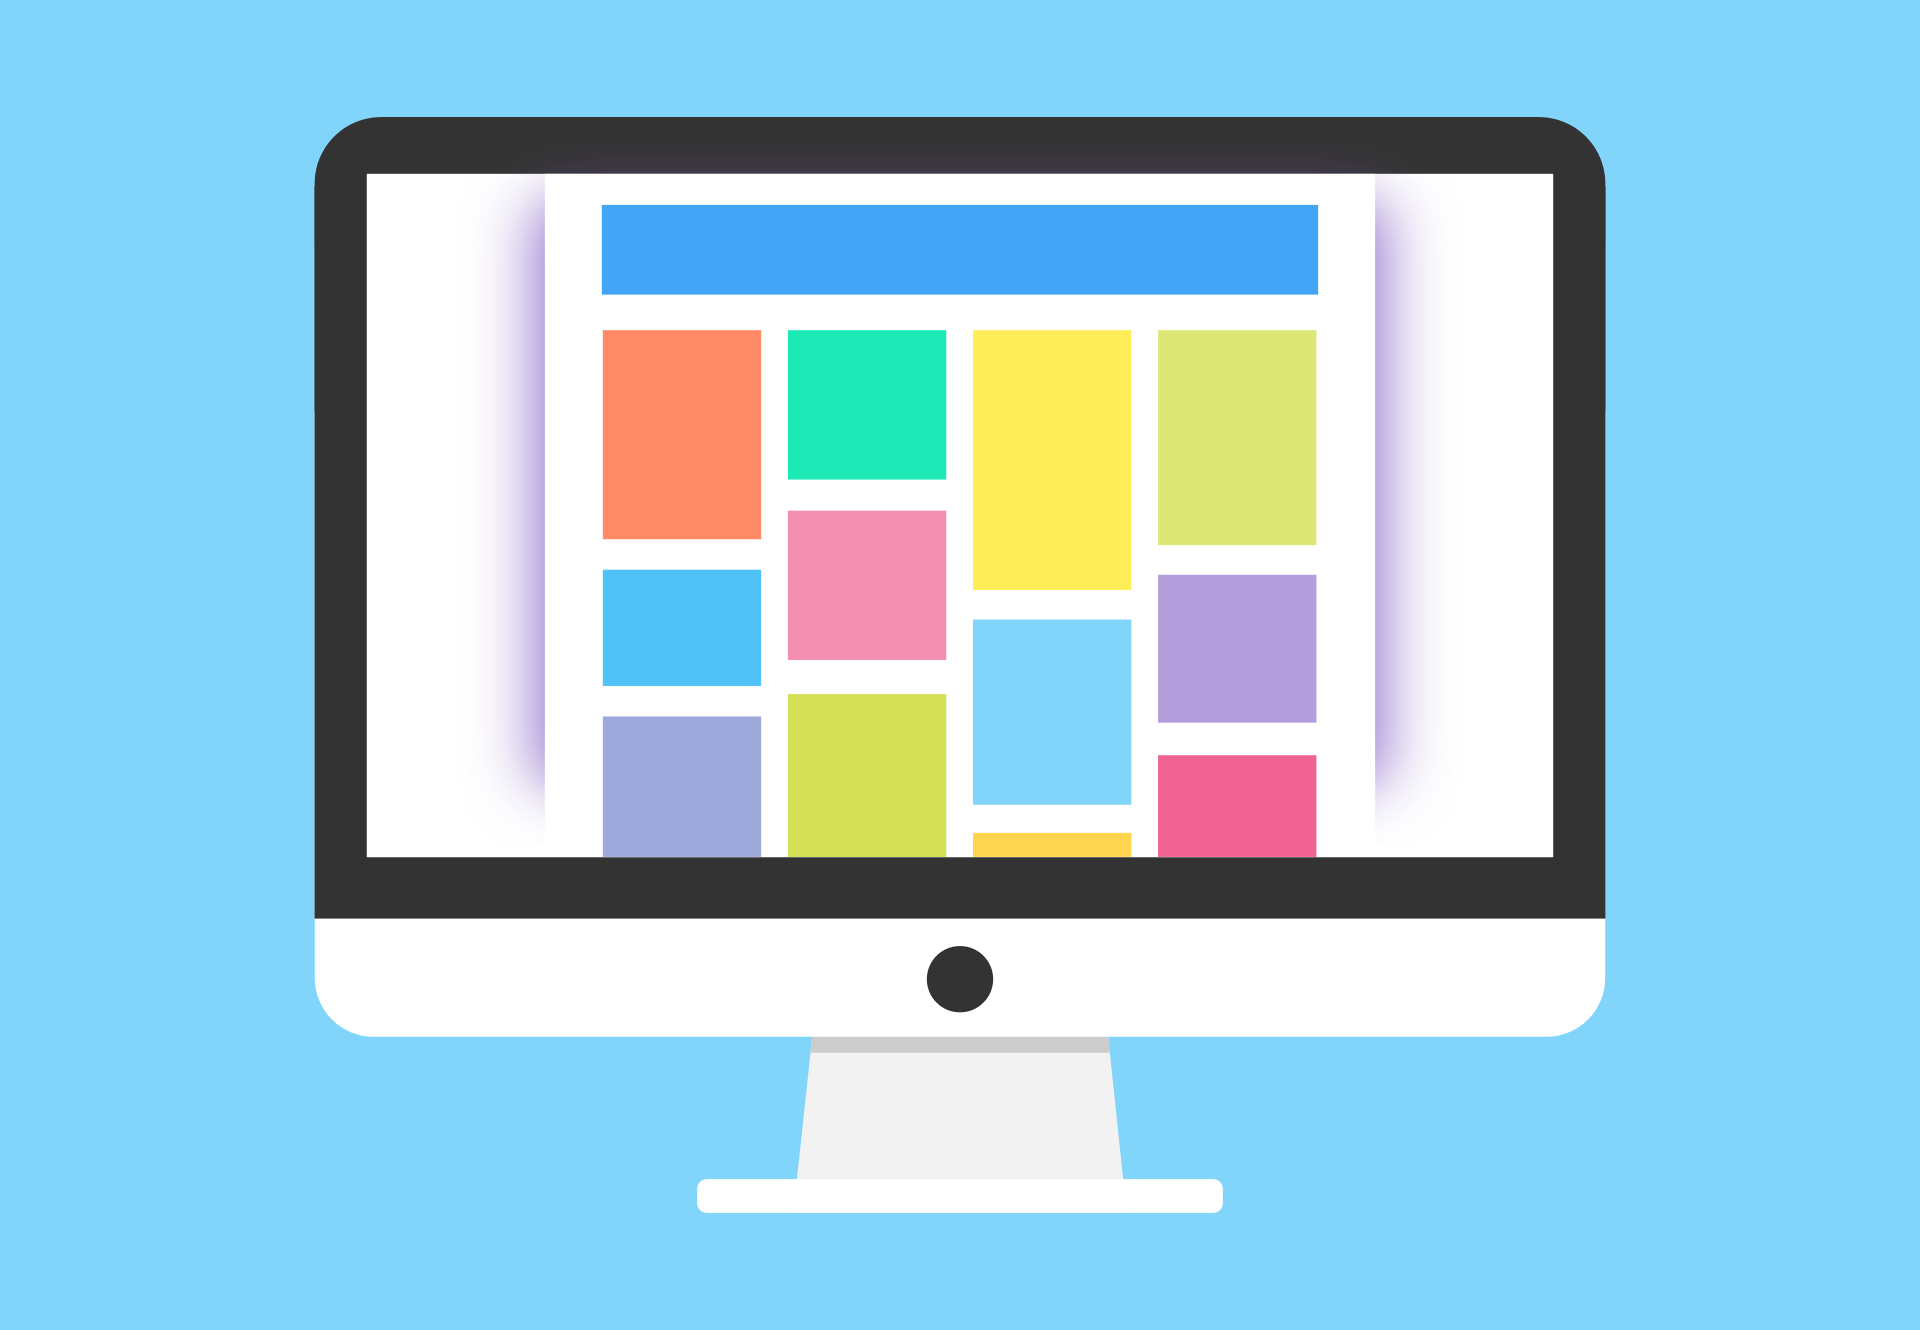 graphic of monitor with various colored squares representing images and text blocks